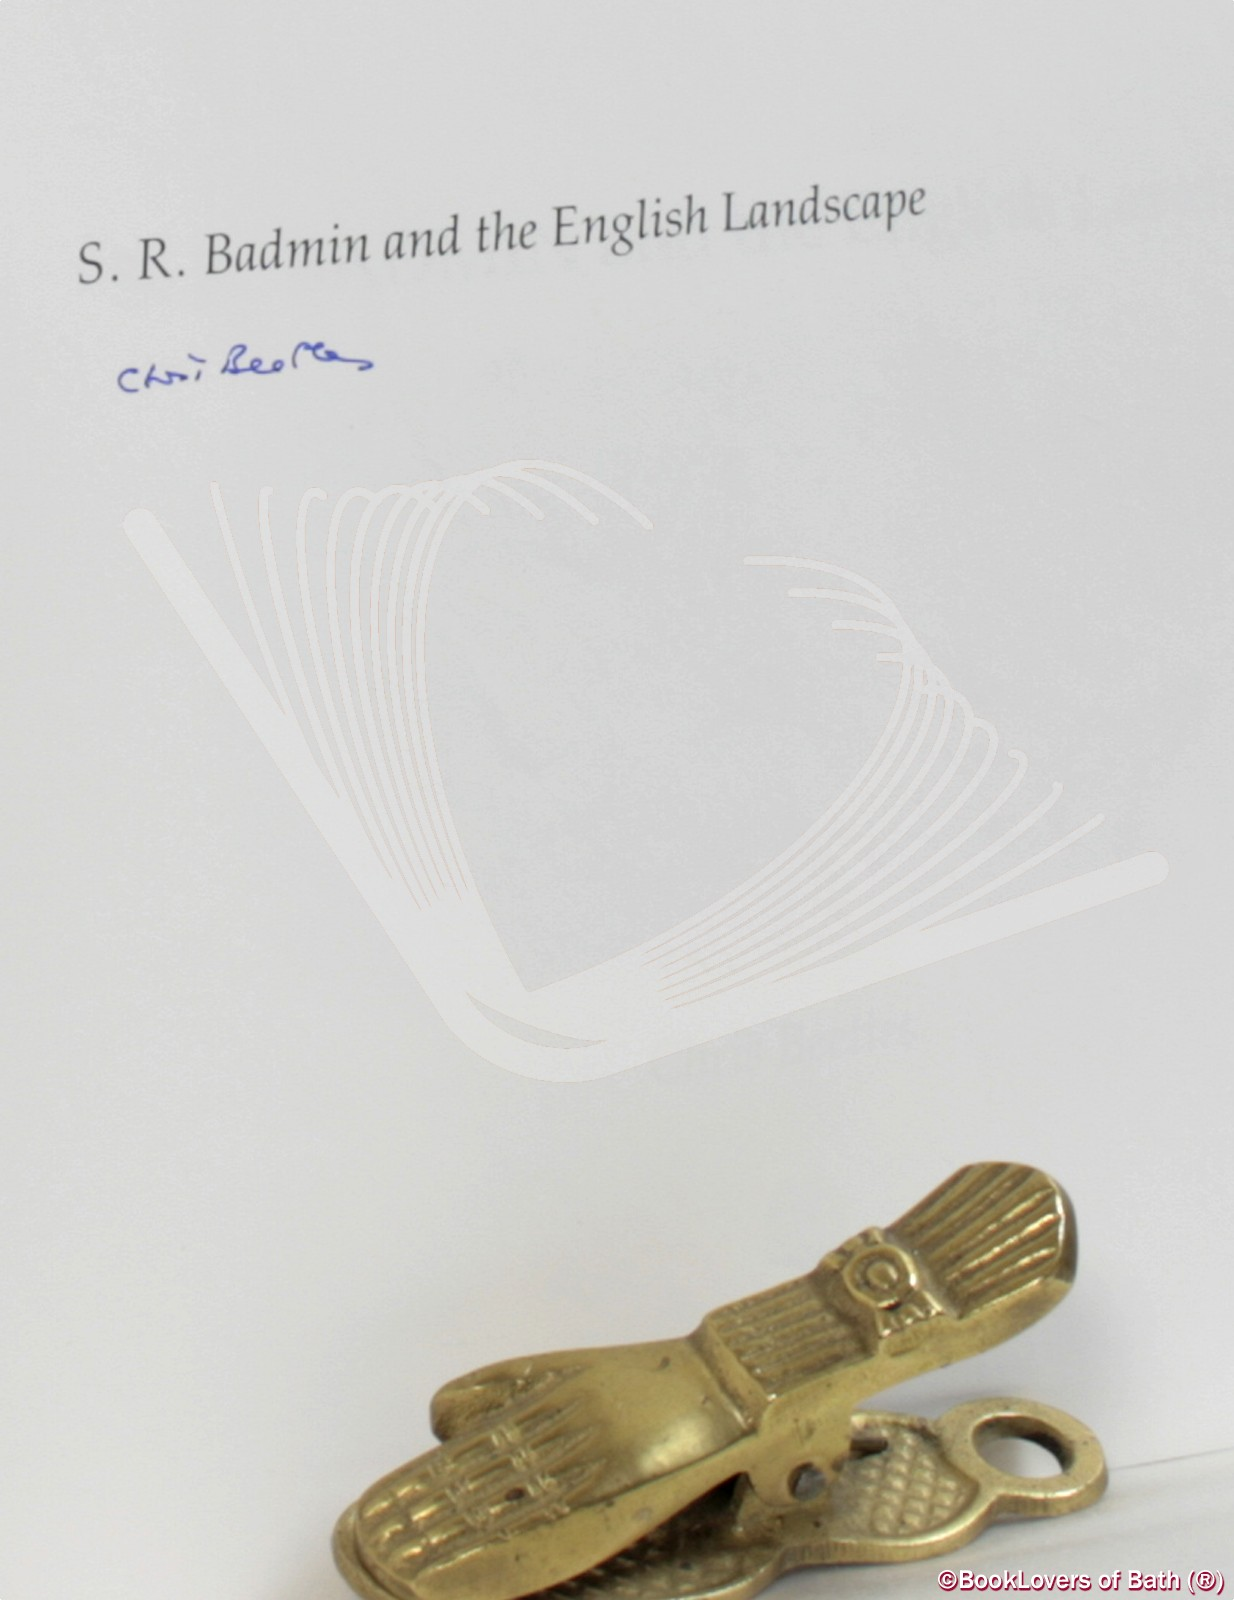 S. R. Badmin and the English Landscape - Chris Beetles